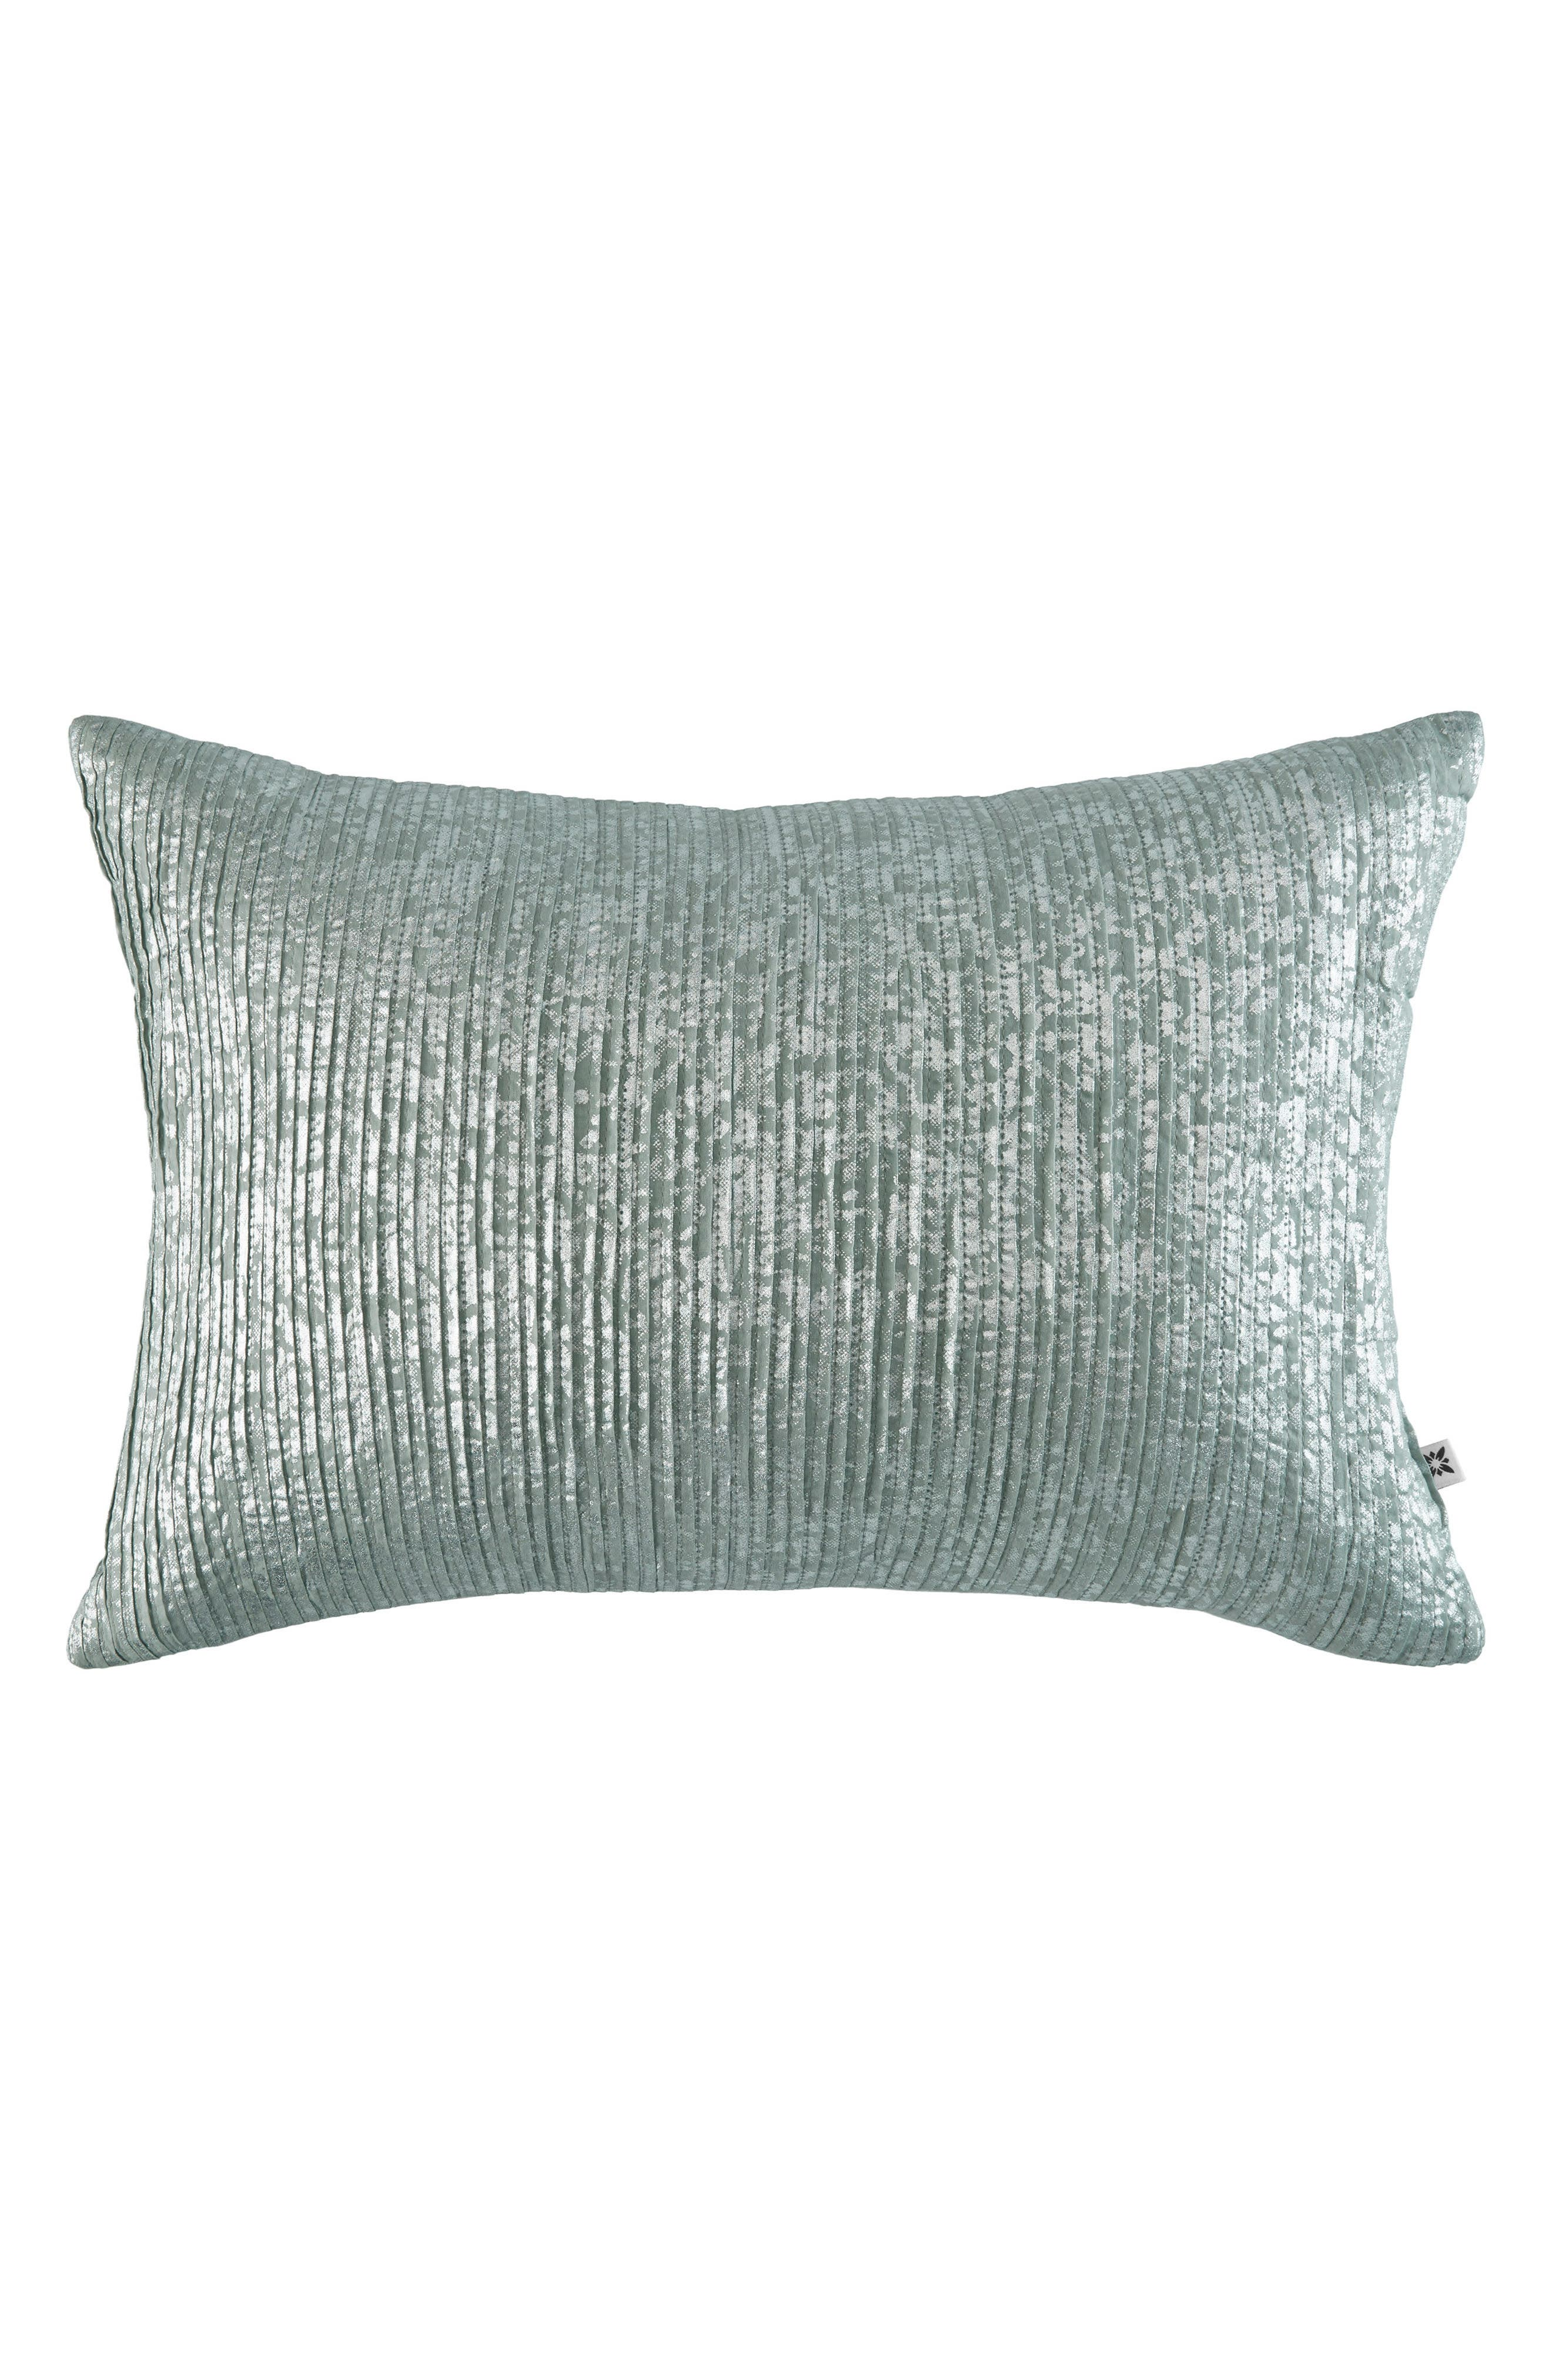 Metallic Ruched Accent Pillow,                             Main thumbnail 1, color,                             499